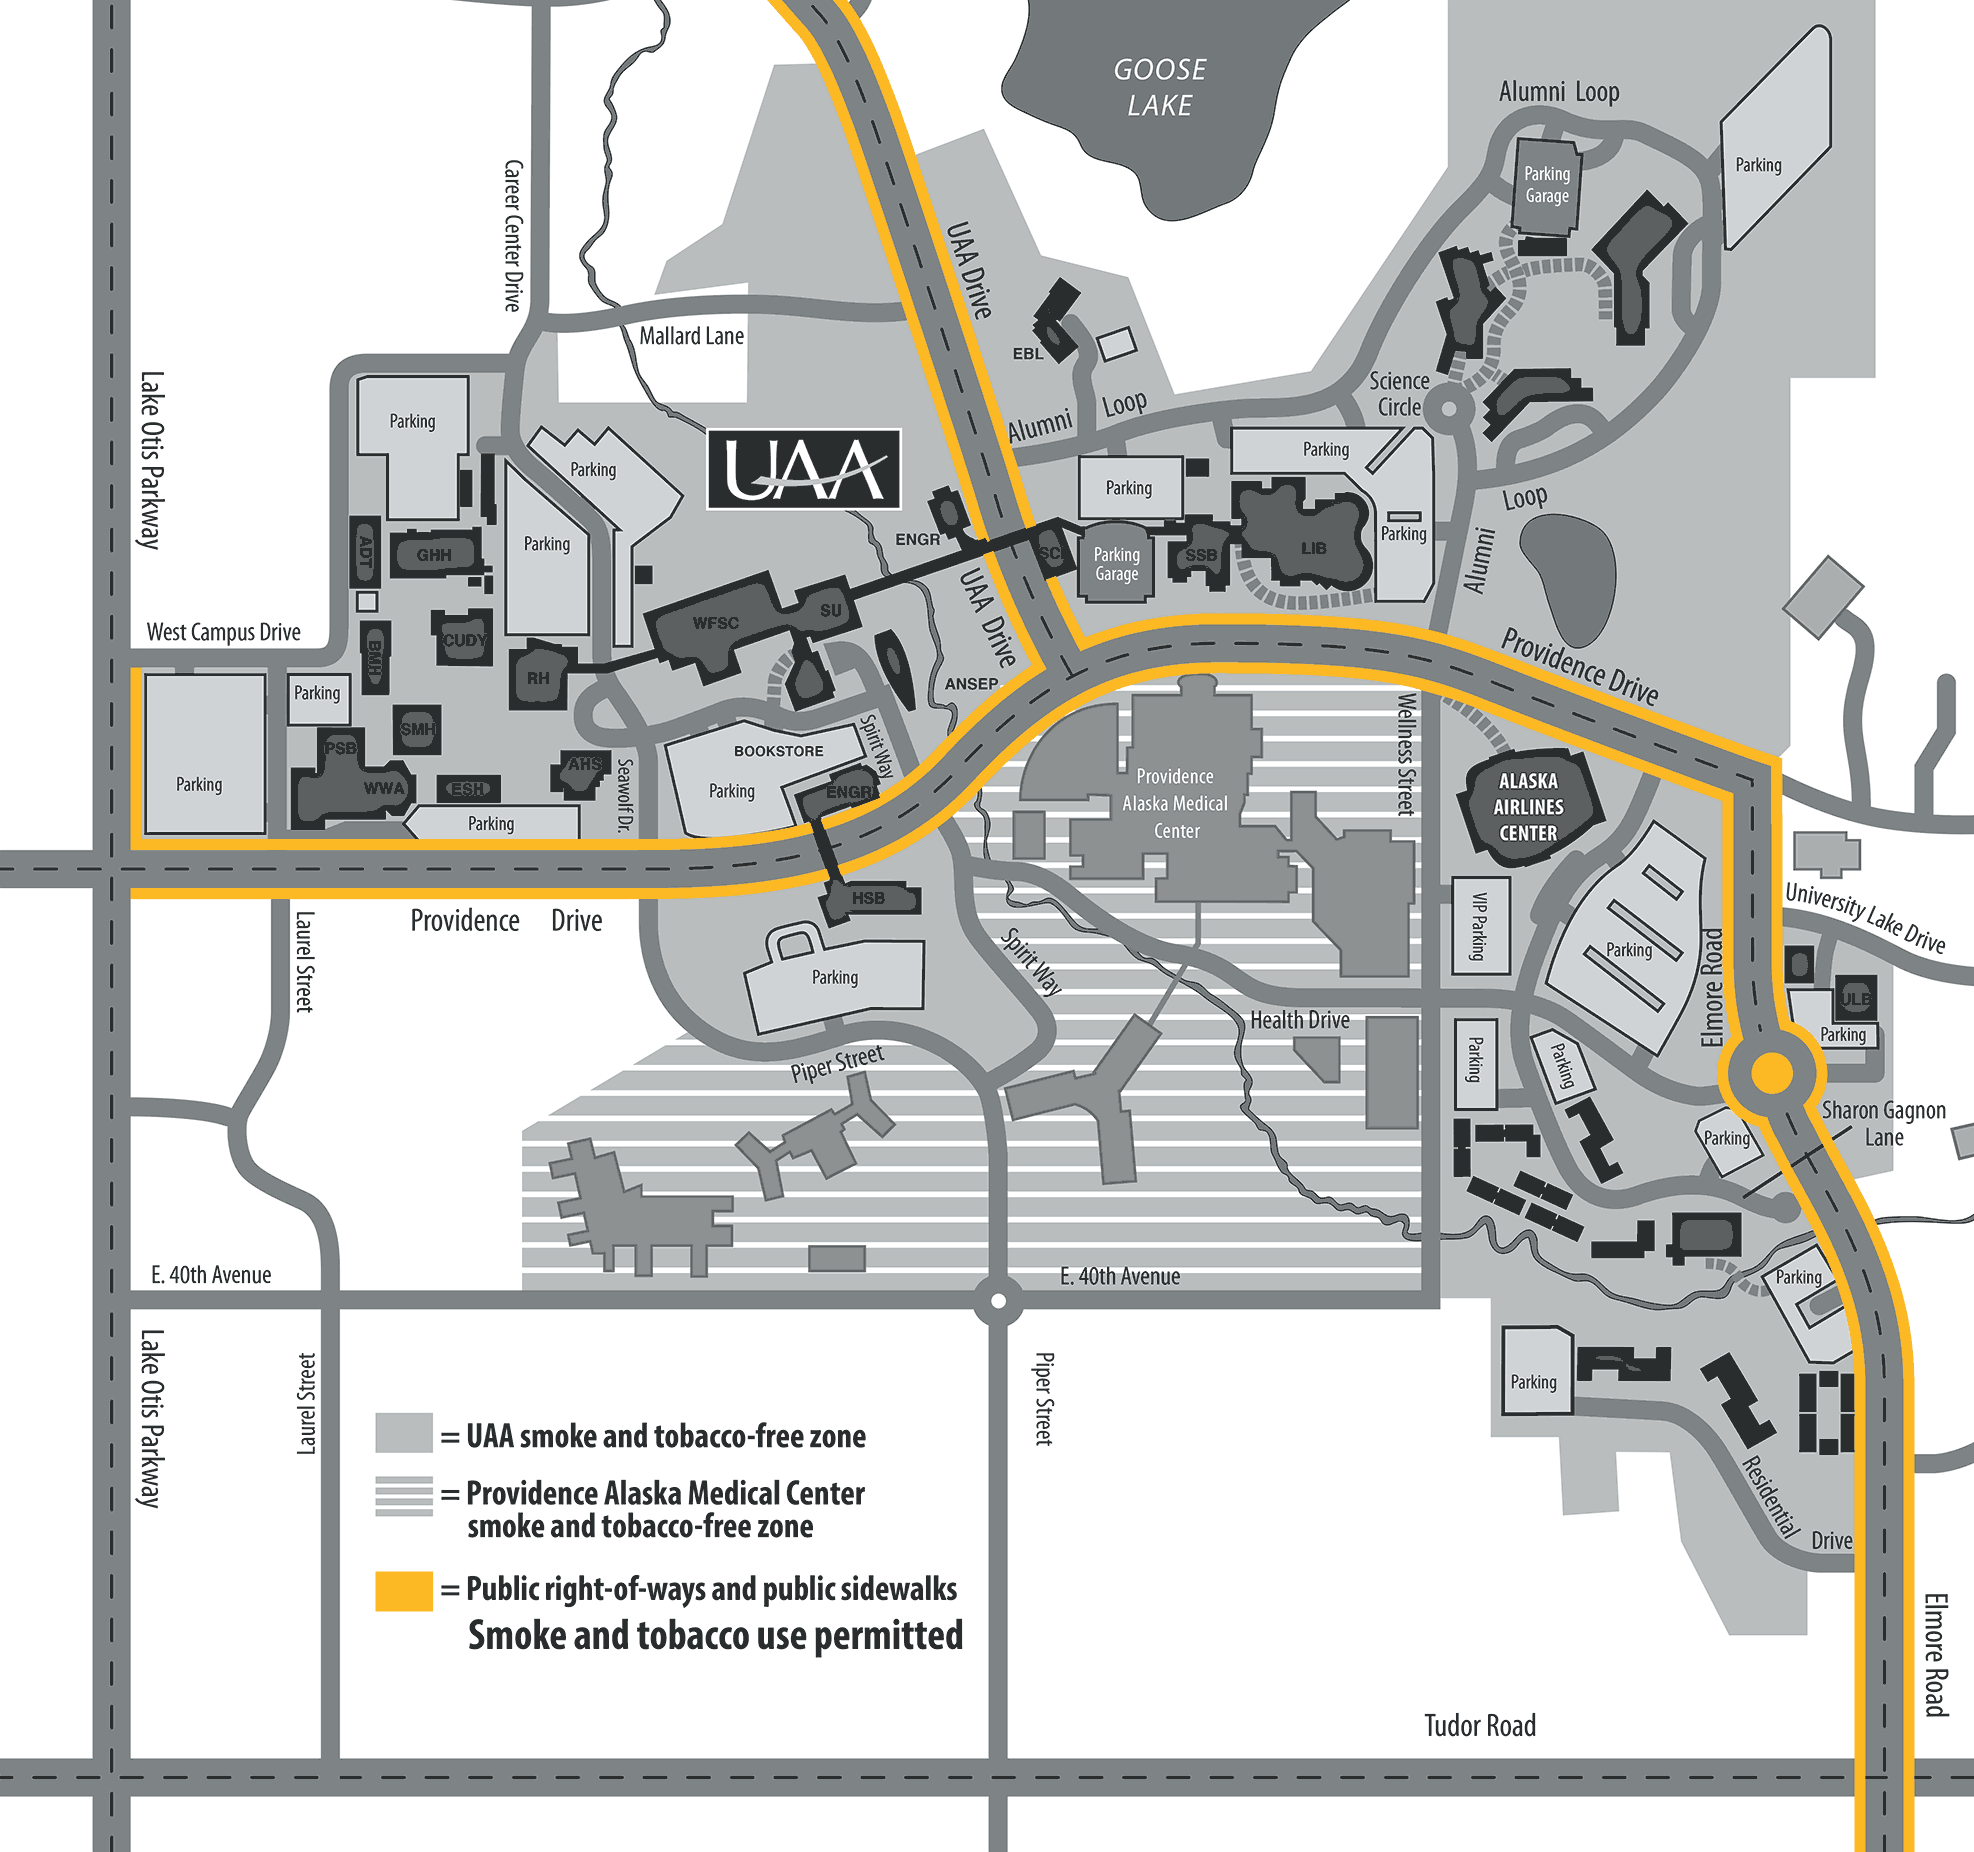 UAA Smoke and Tobacco Use Zone Map